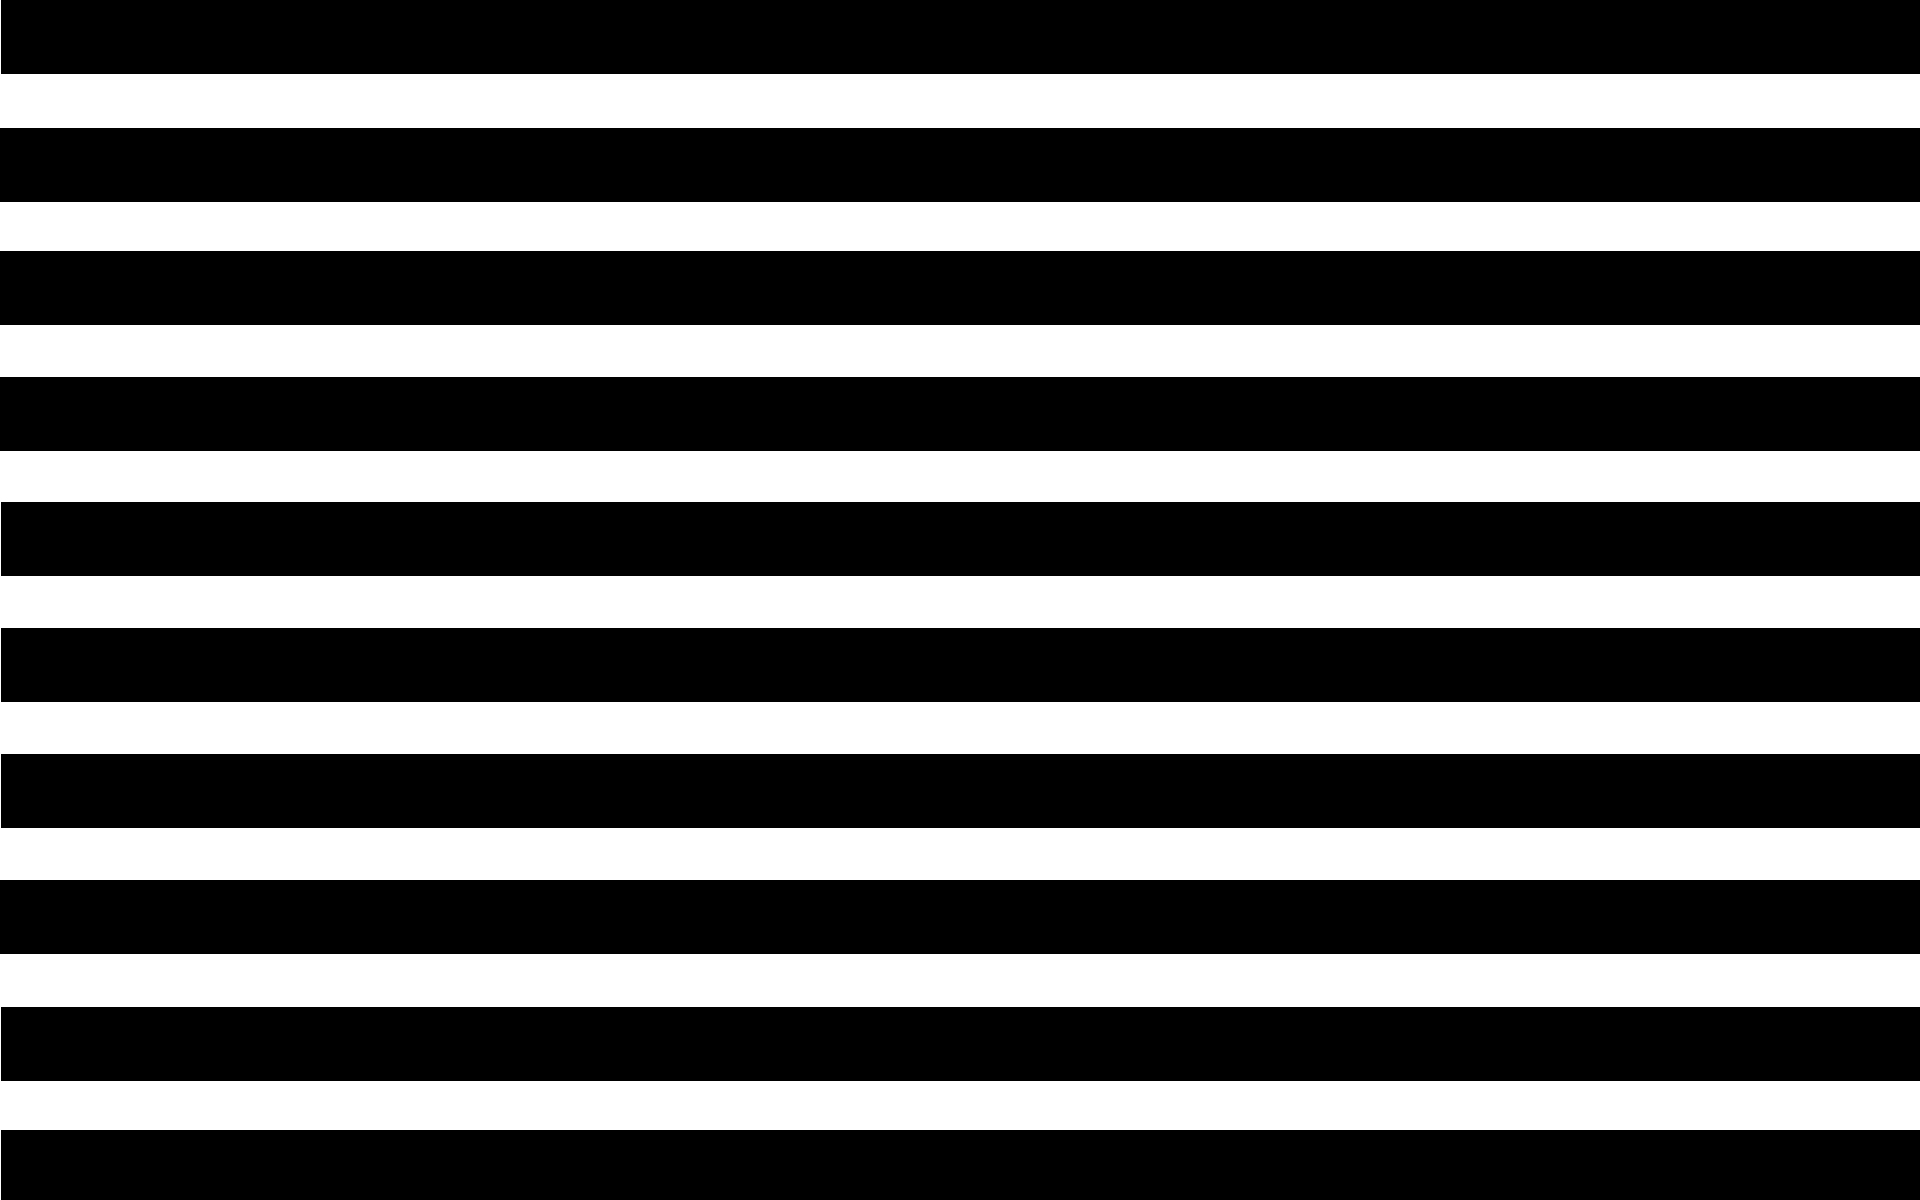 Striped-Desktop-Wallpaper